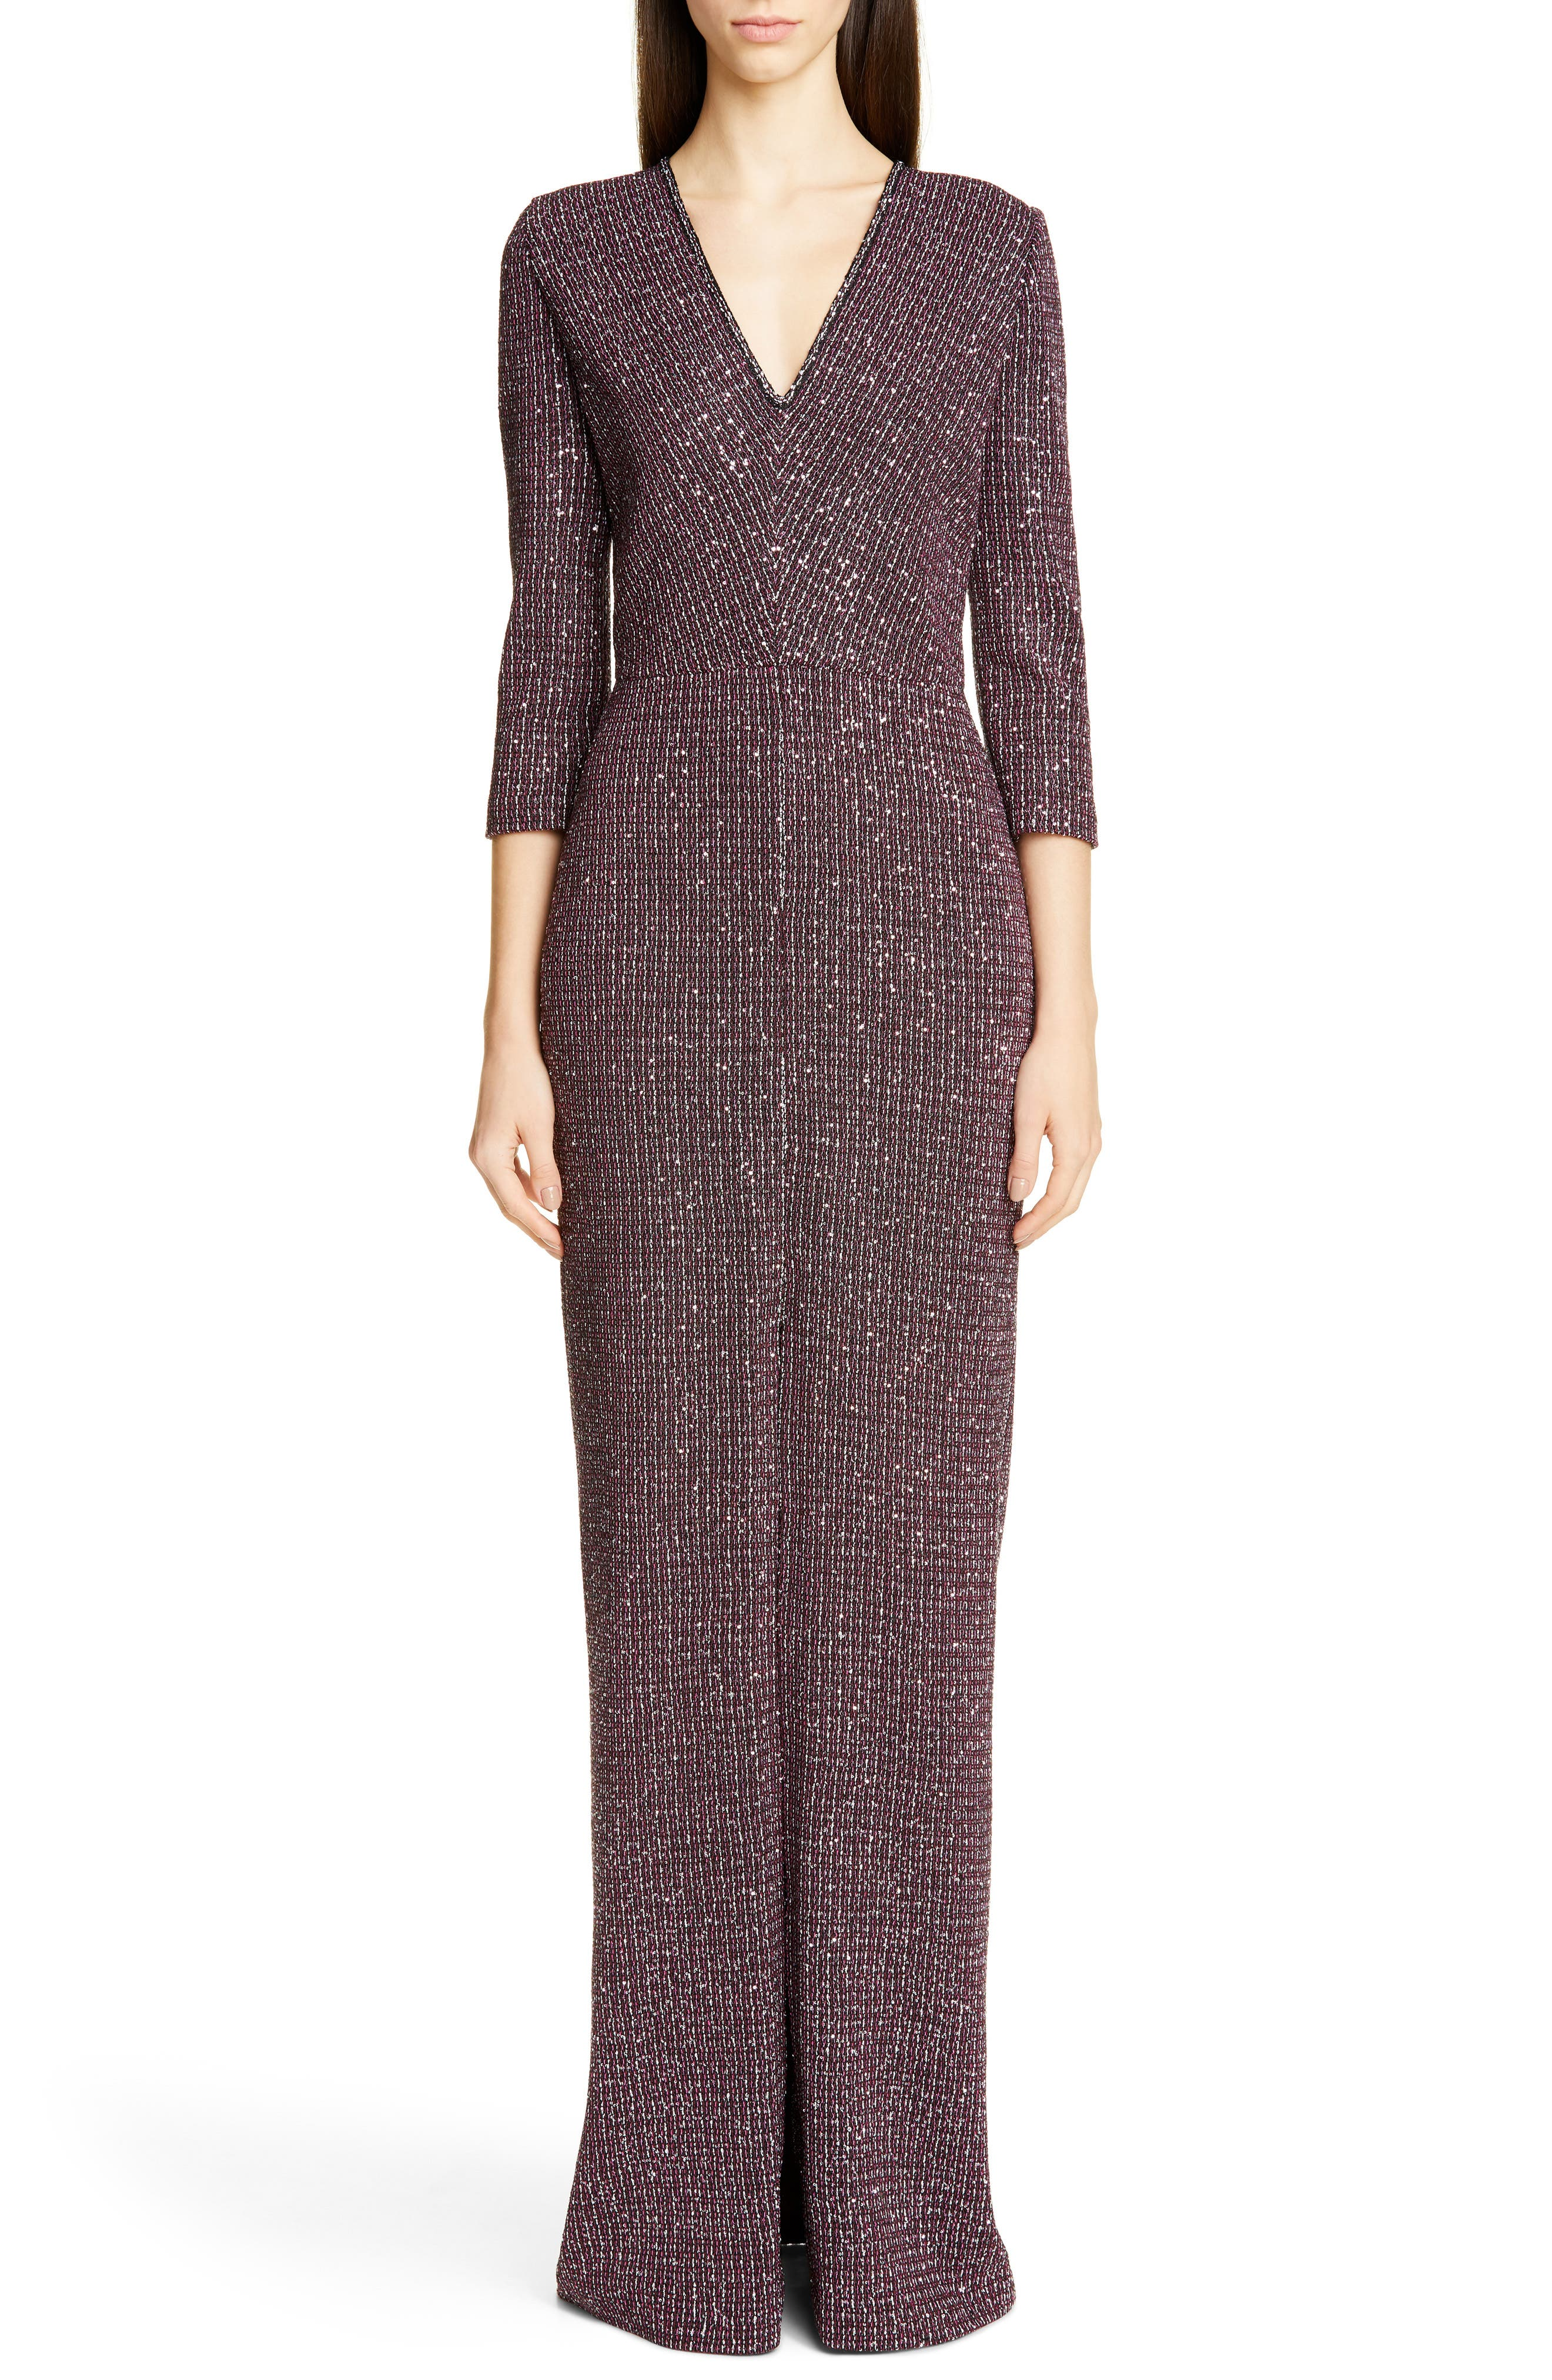 St. John Collection Sequin Tweed Knit Evening Gown, Purple